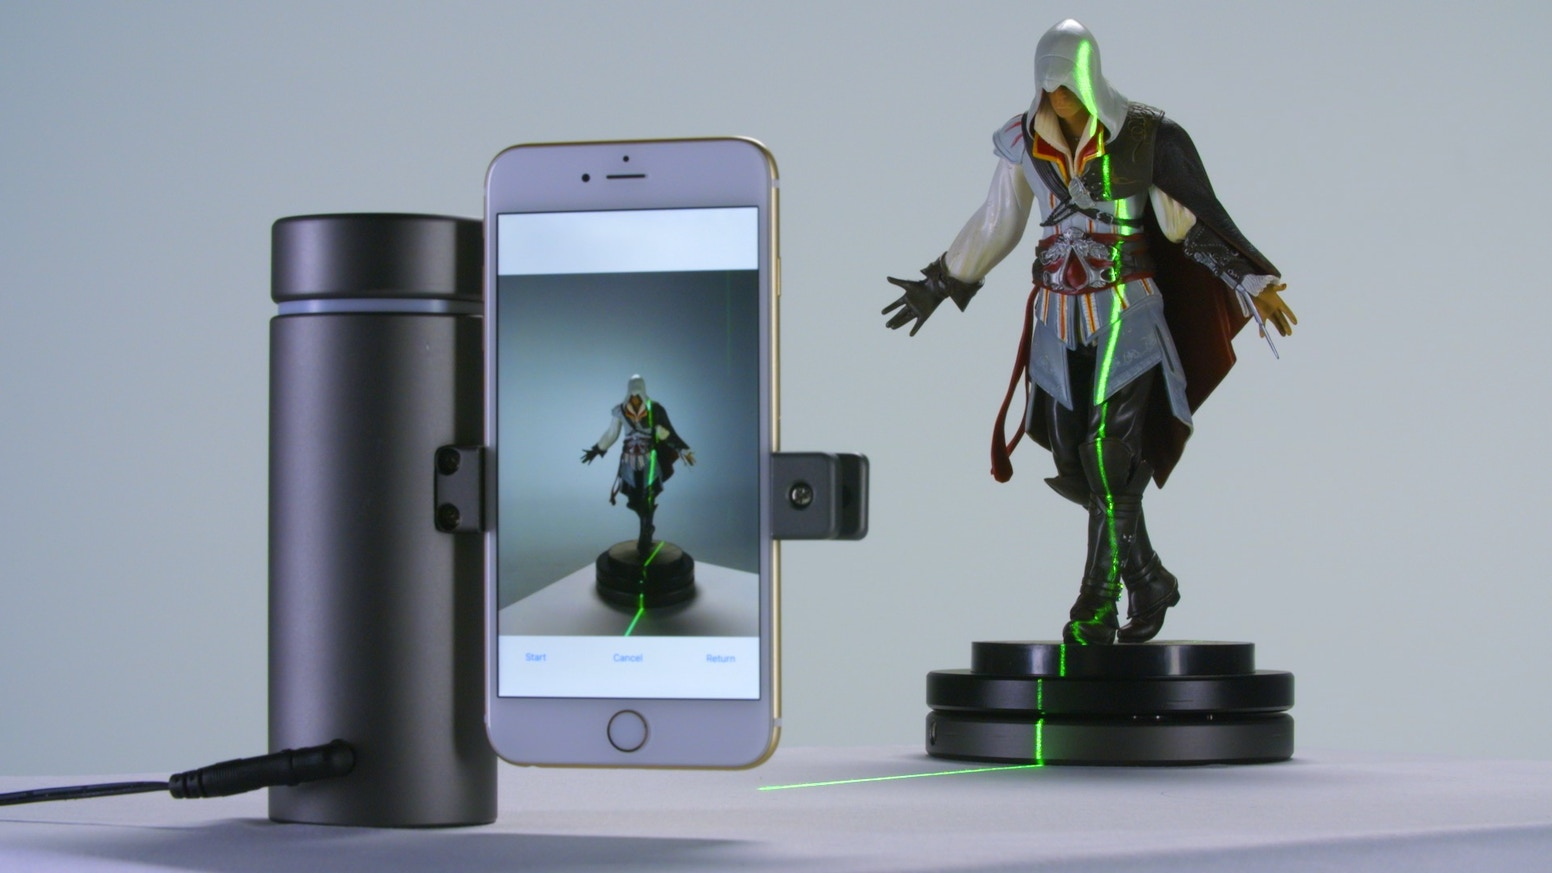 3d Scanner App >> Eora 3d High Precision 3d Scanning On Your Smartphone By Eora 3d